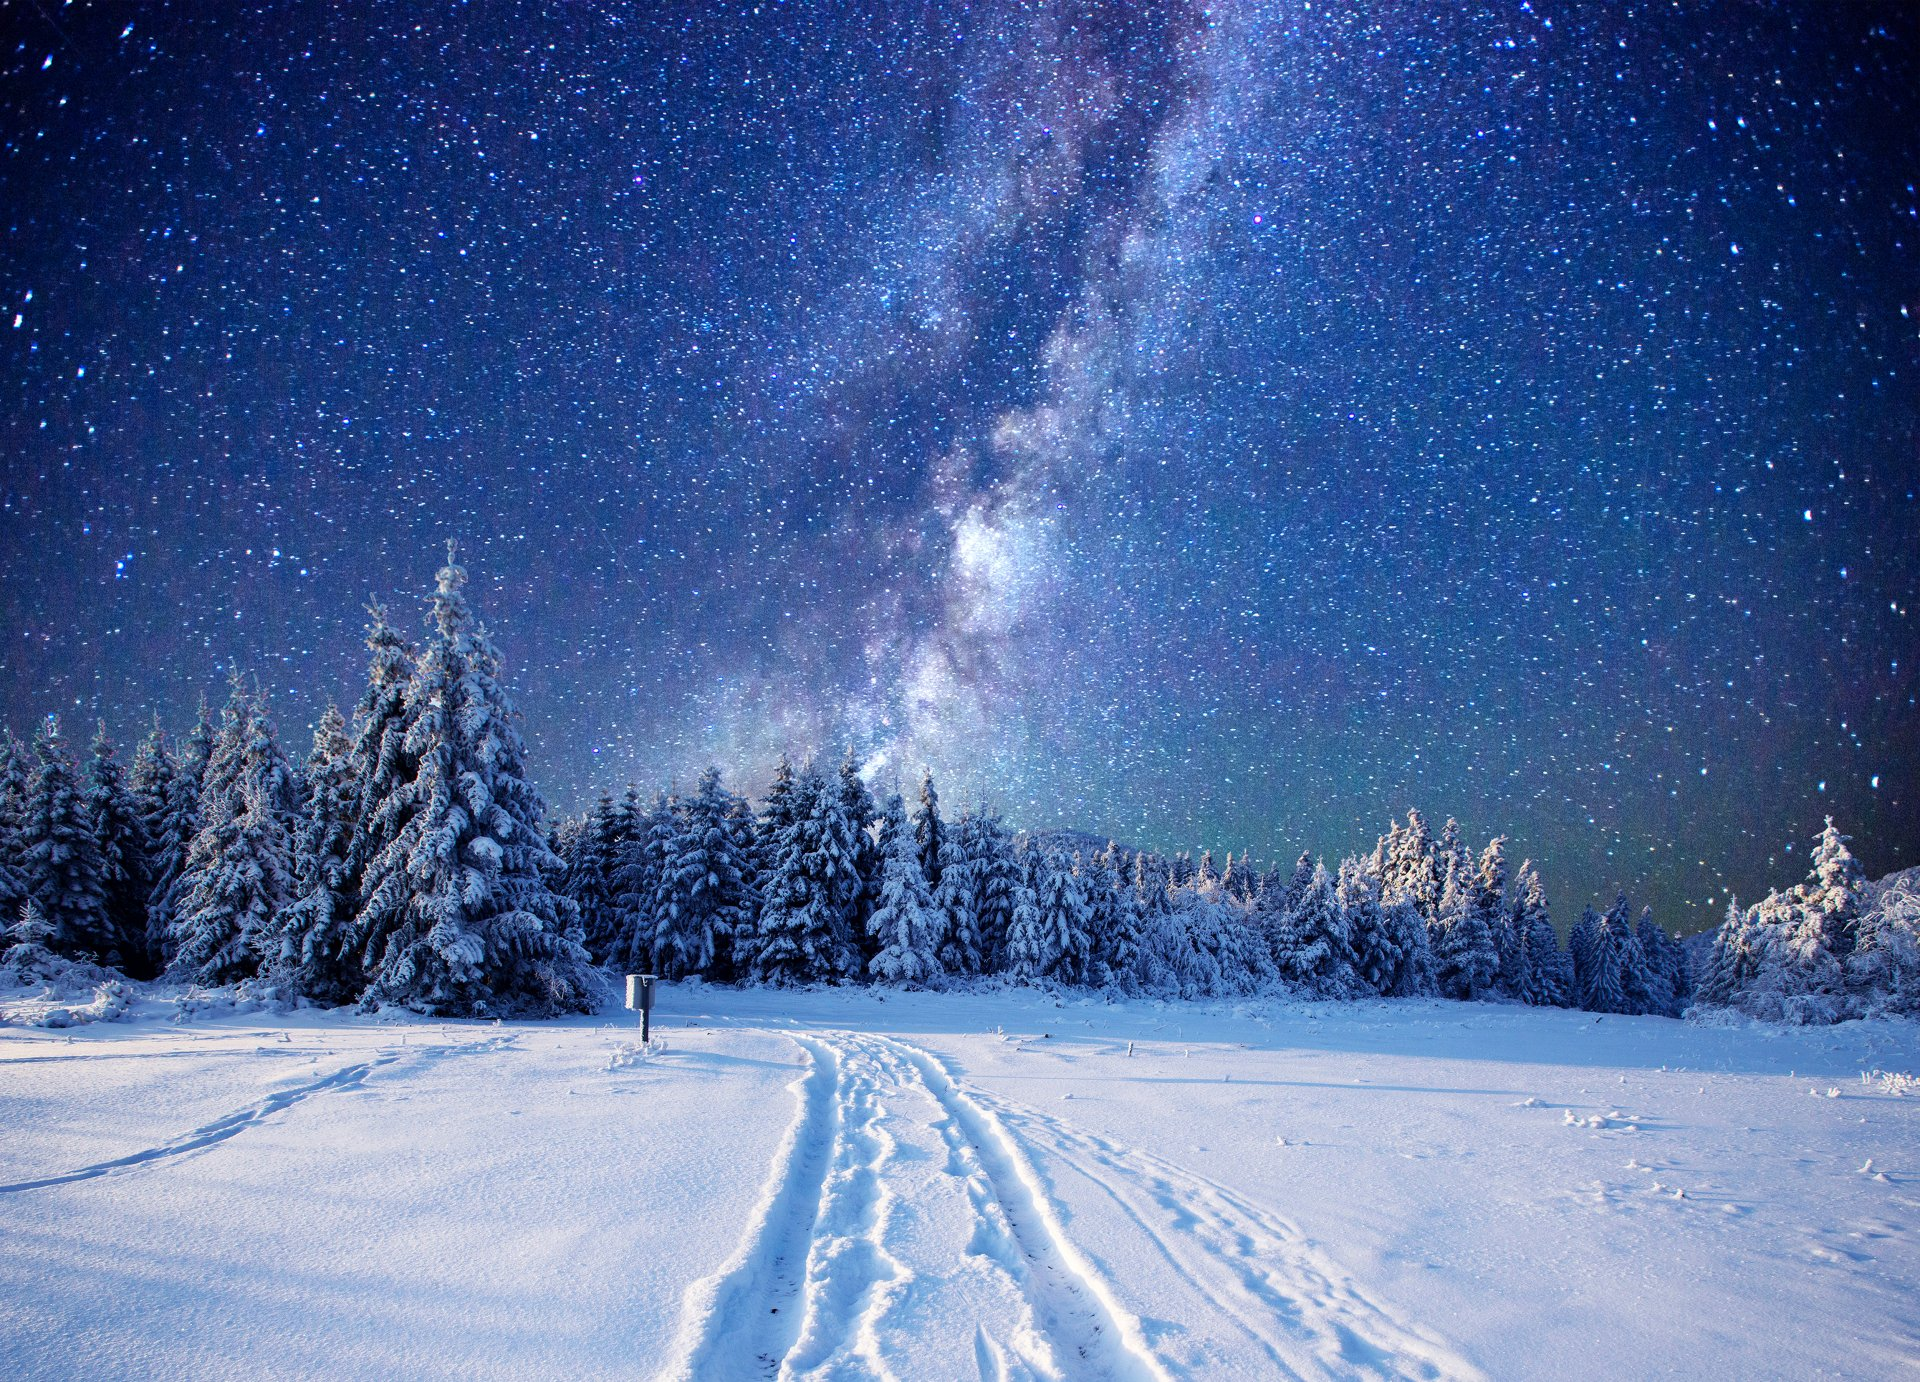 Sci Fi - Milky Way  Winter Forest Tree Snow Sky Stars Nature Wallpaper